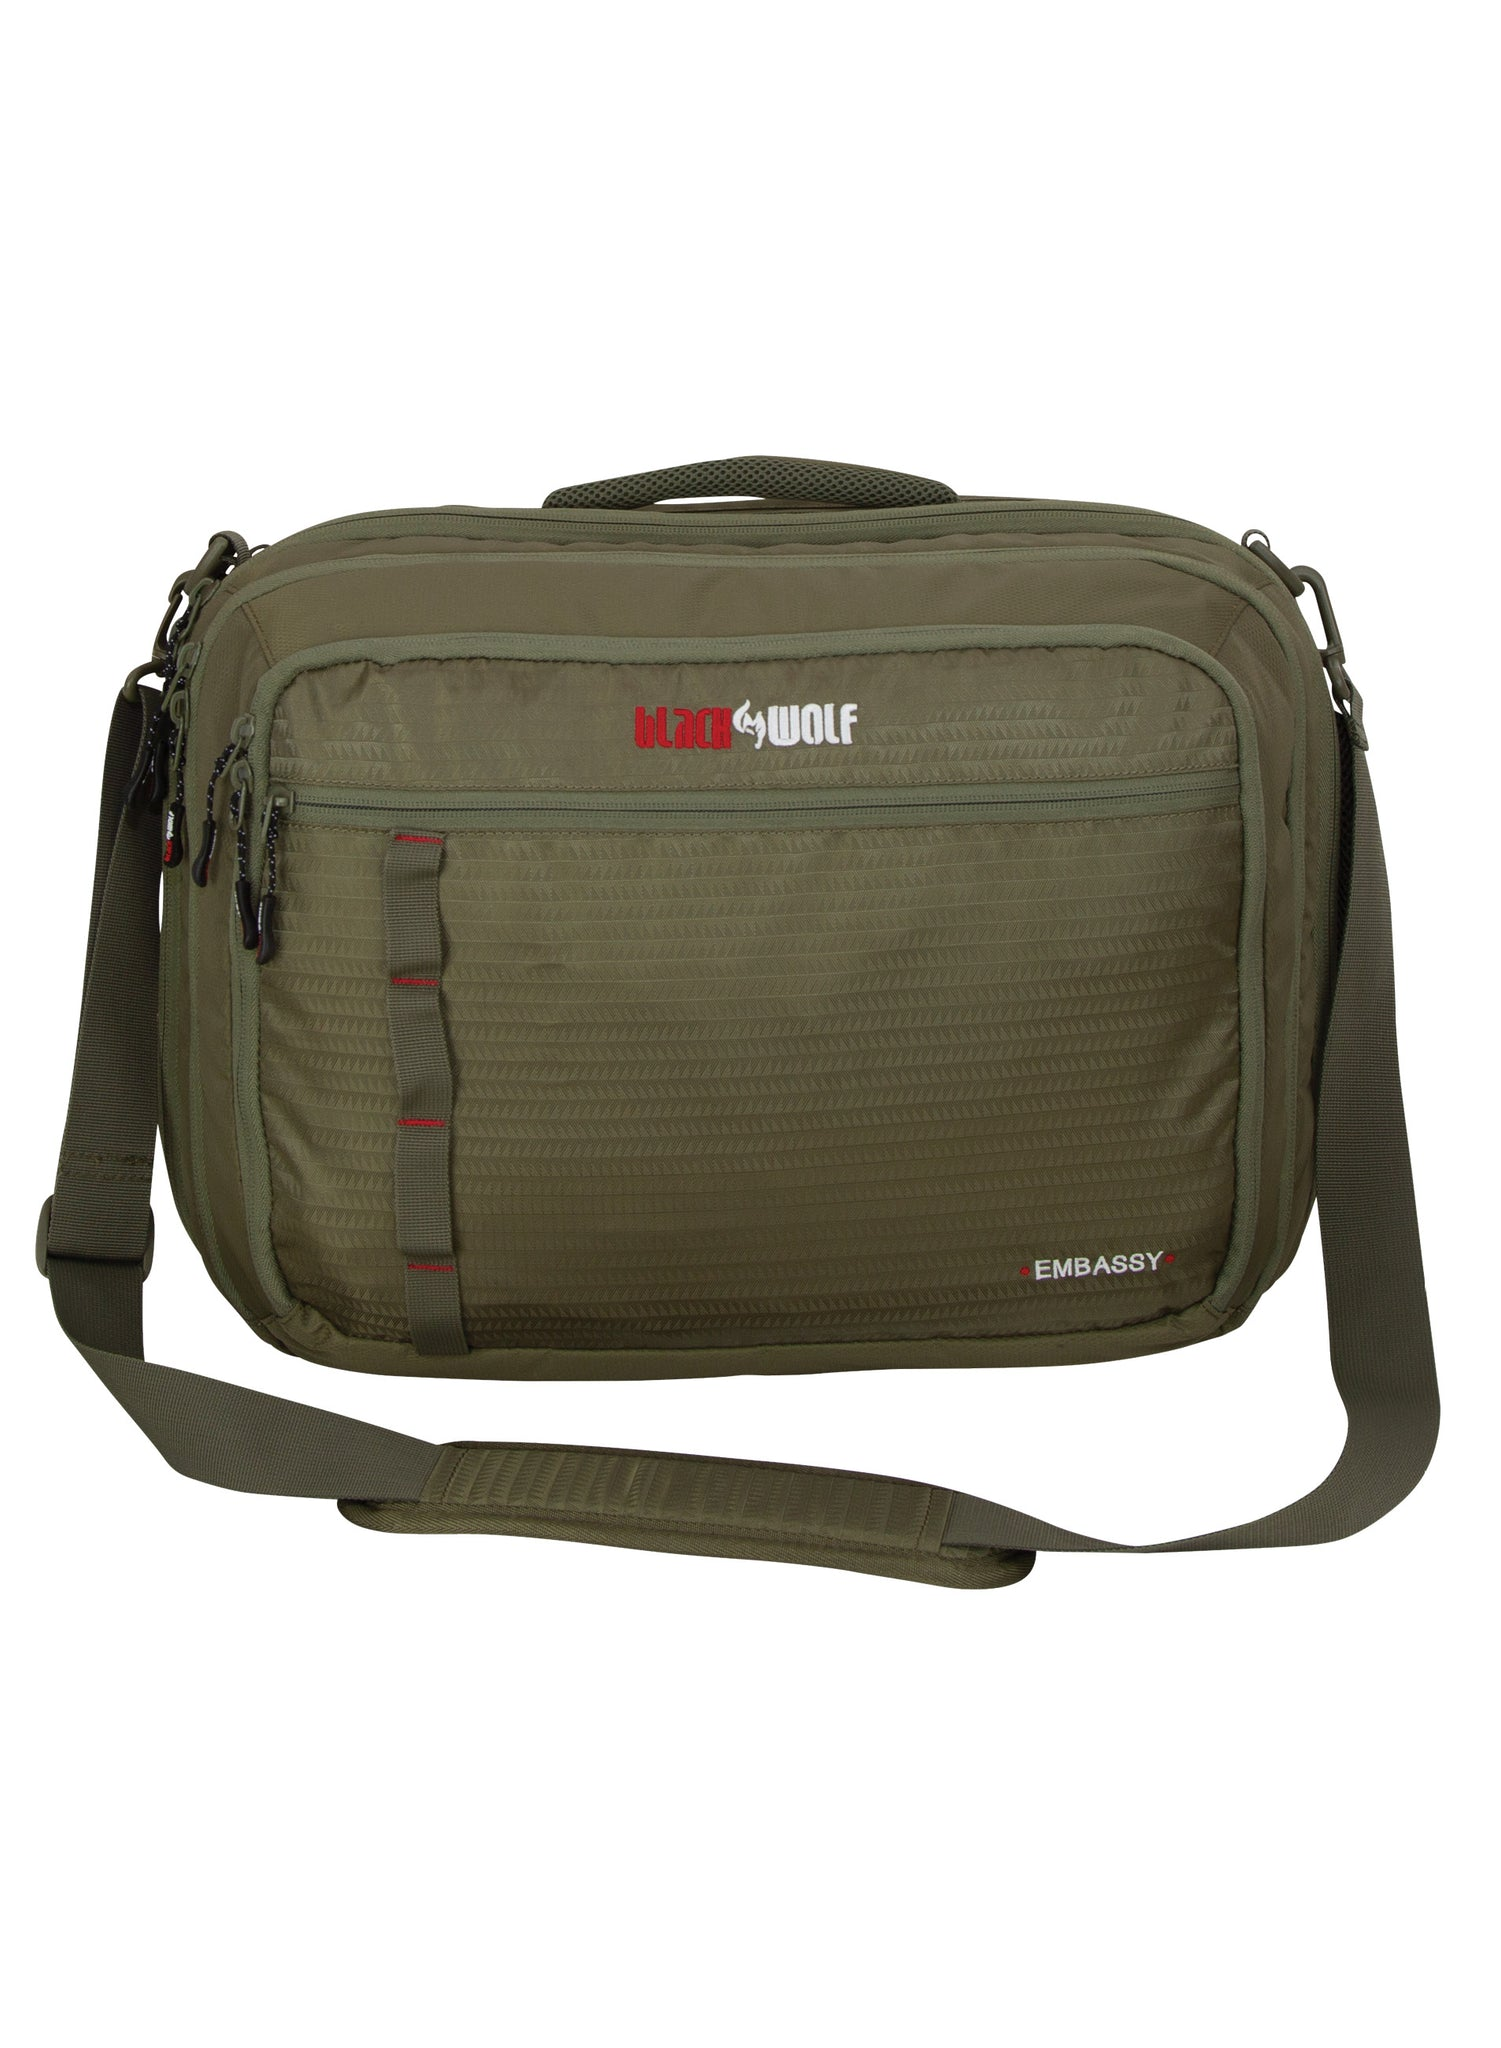 Embassy Tech Bag Moss